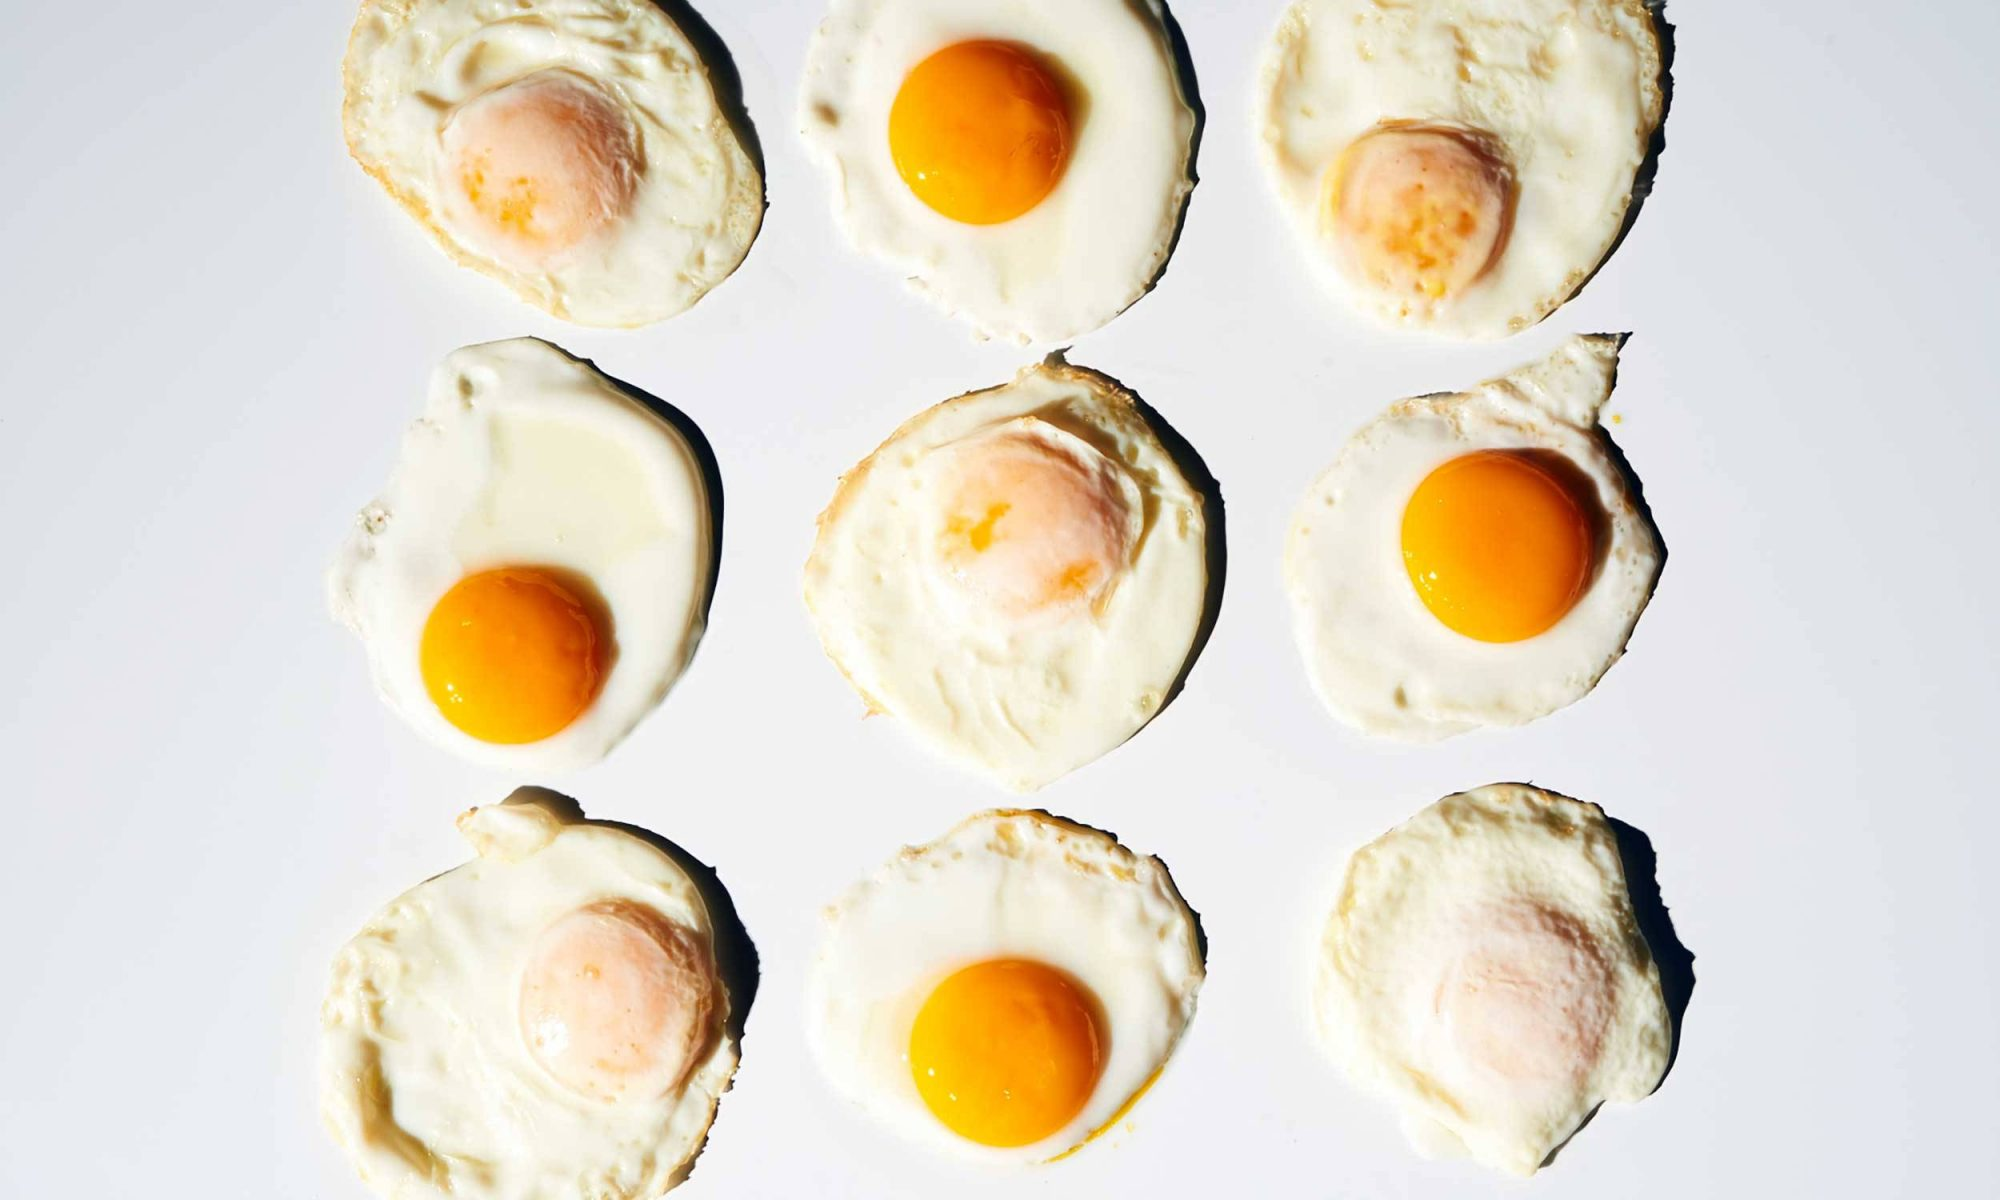 How to Make Sunny-Side Up Eggs for a Crowd